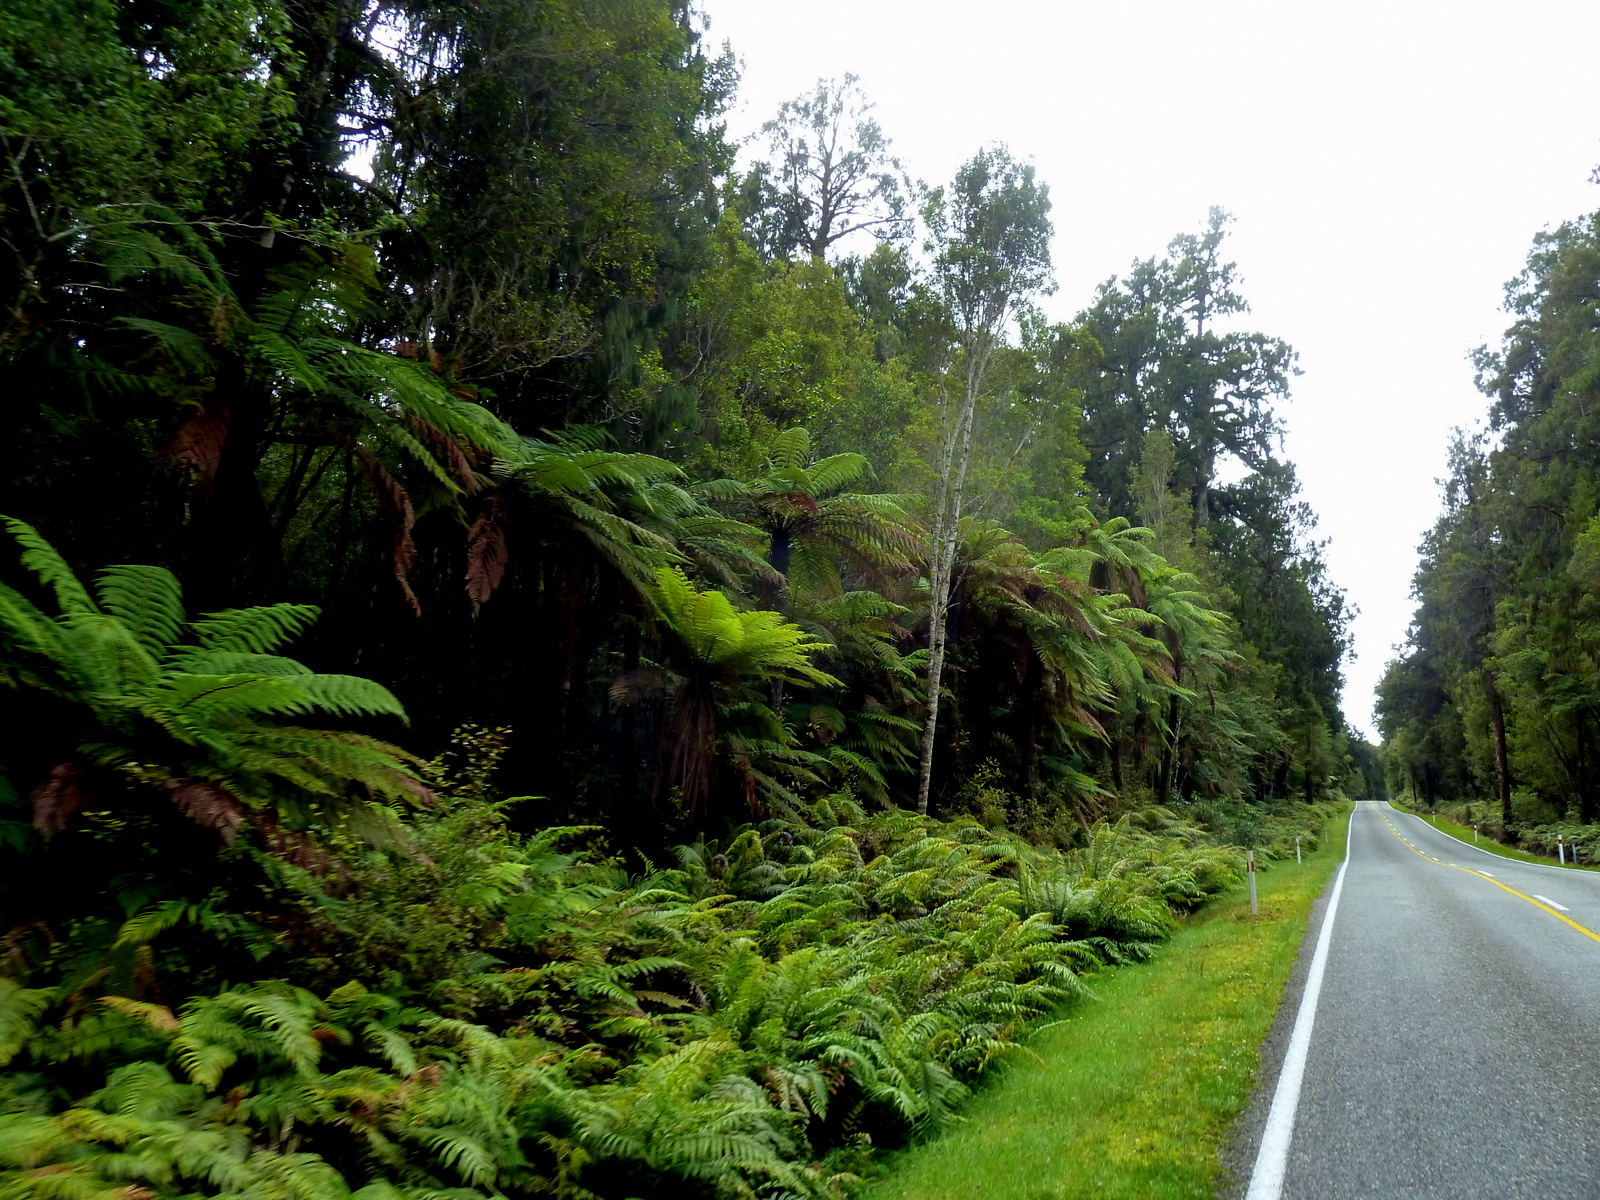 tree-ferns-and-fauna-road-to-glaciers